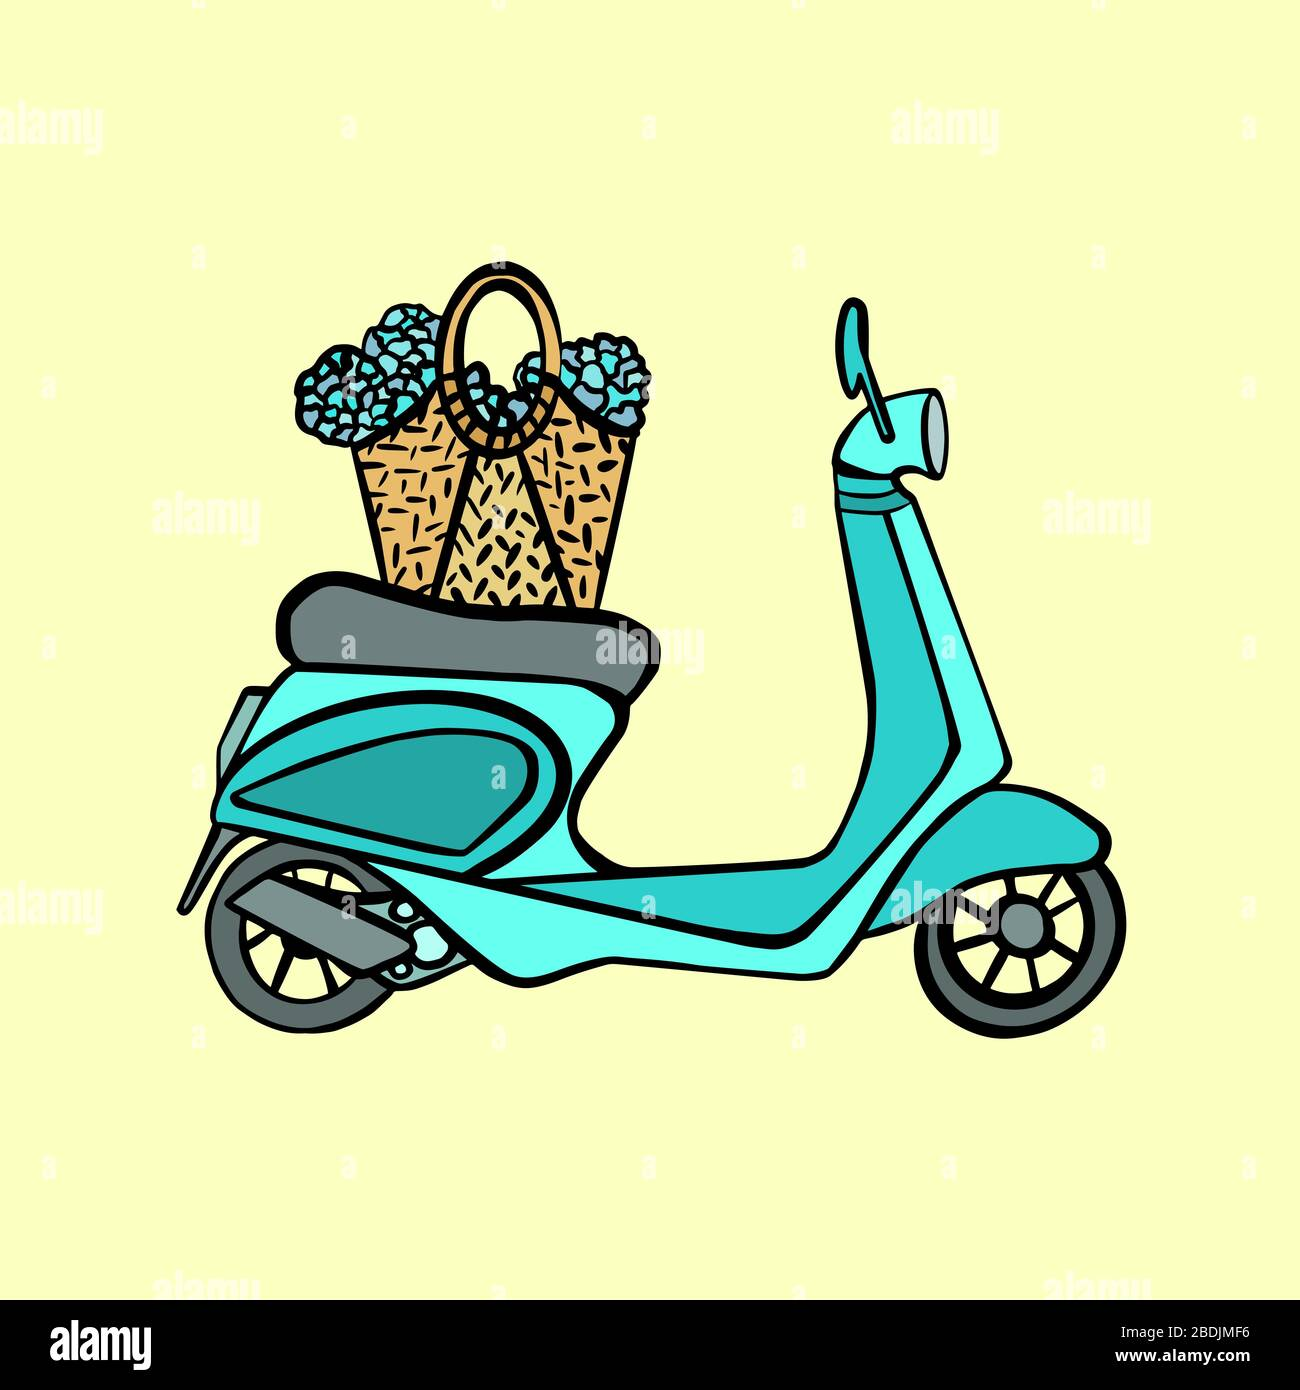 Blue Vintage Scooter Vector Illustration Green Vespa With Flowers In Basket On Yellow Background Cute Motobike Flat Cartoon Style Stock Vector Image Art Alamy